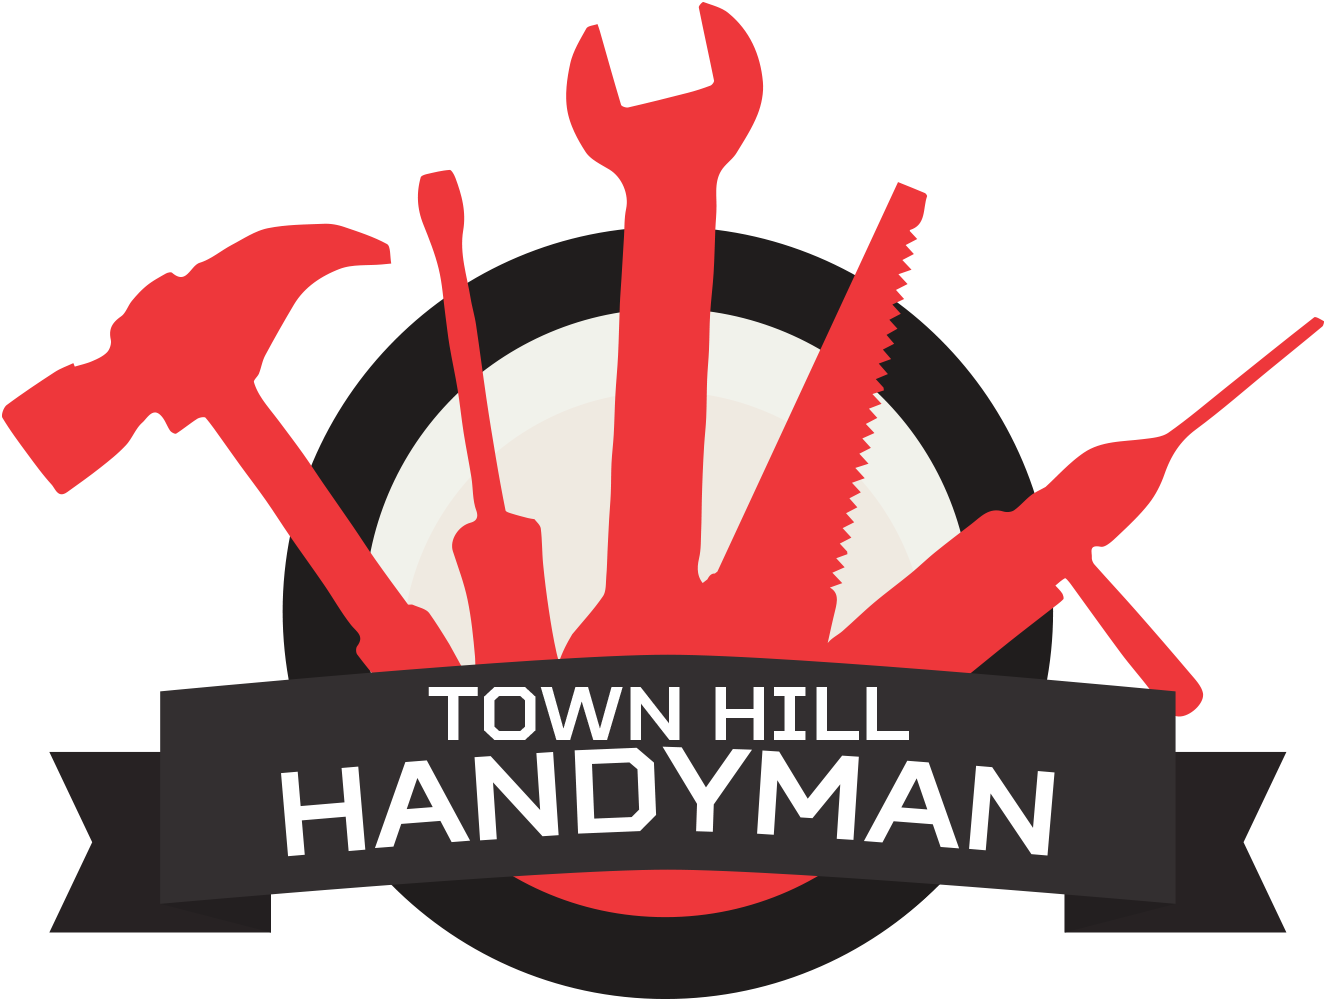 Handyman clipart hardware store. Town hill home repairs